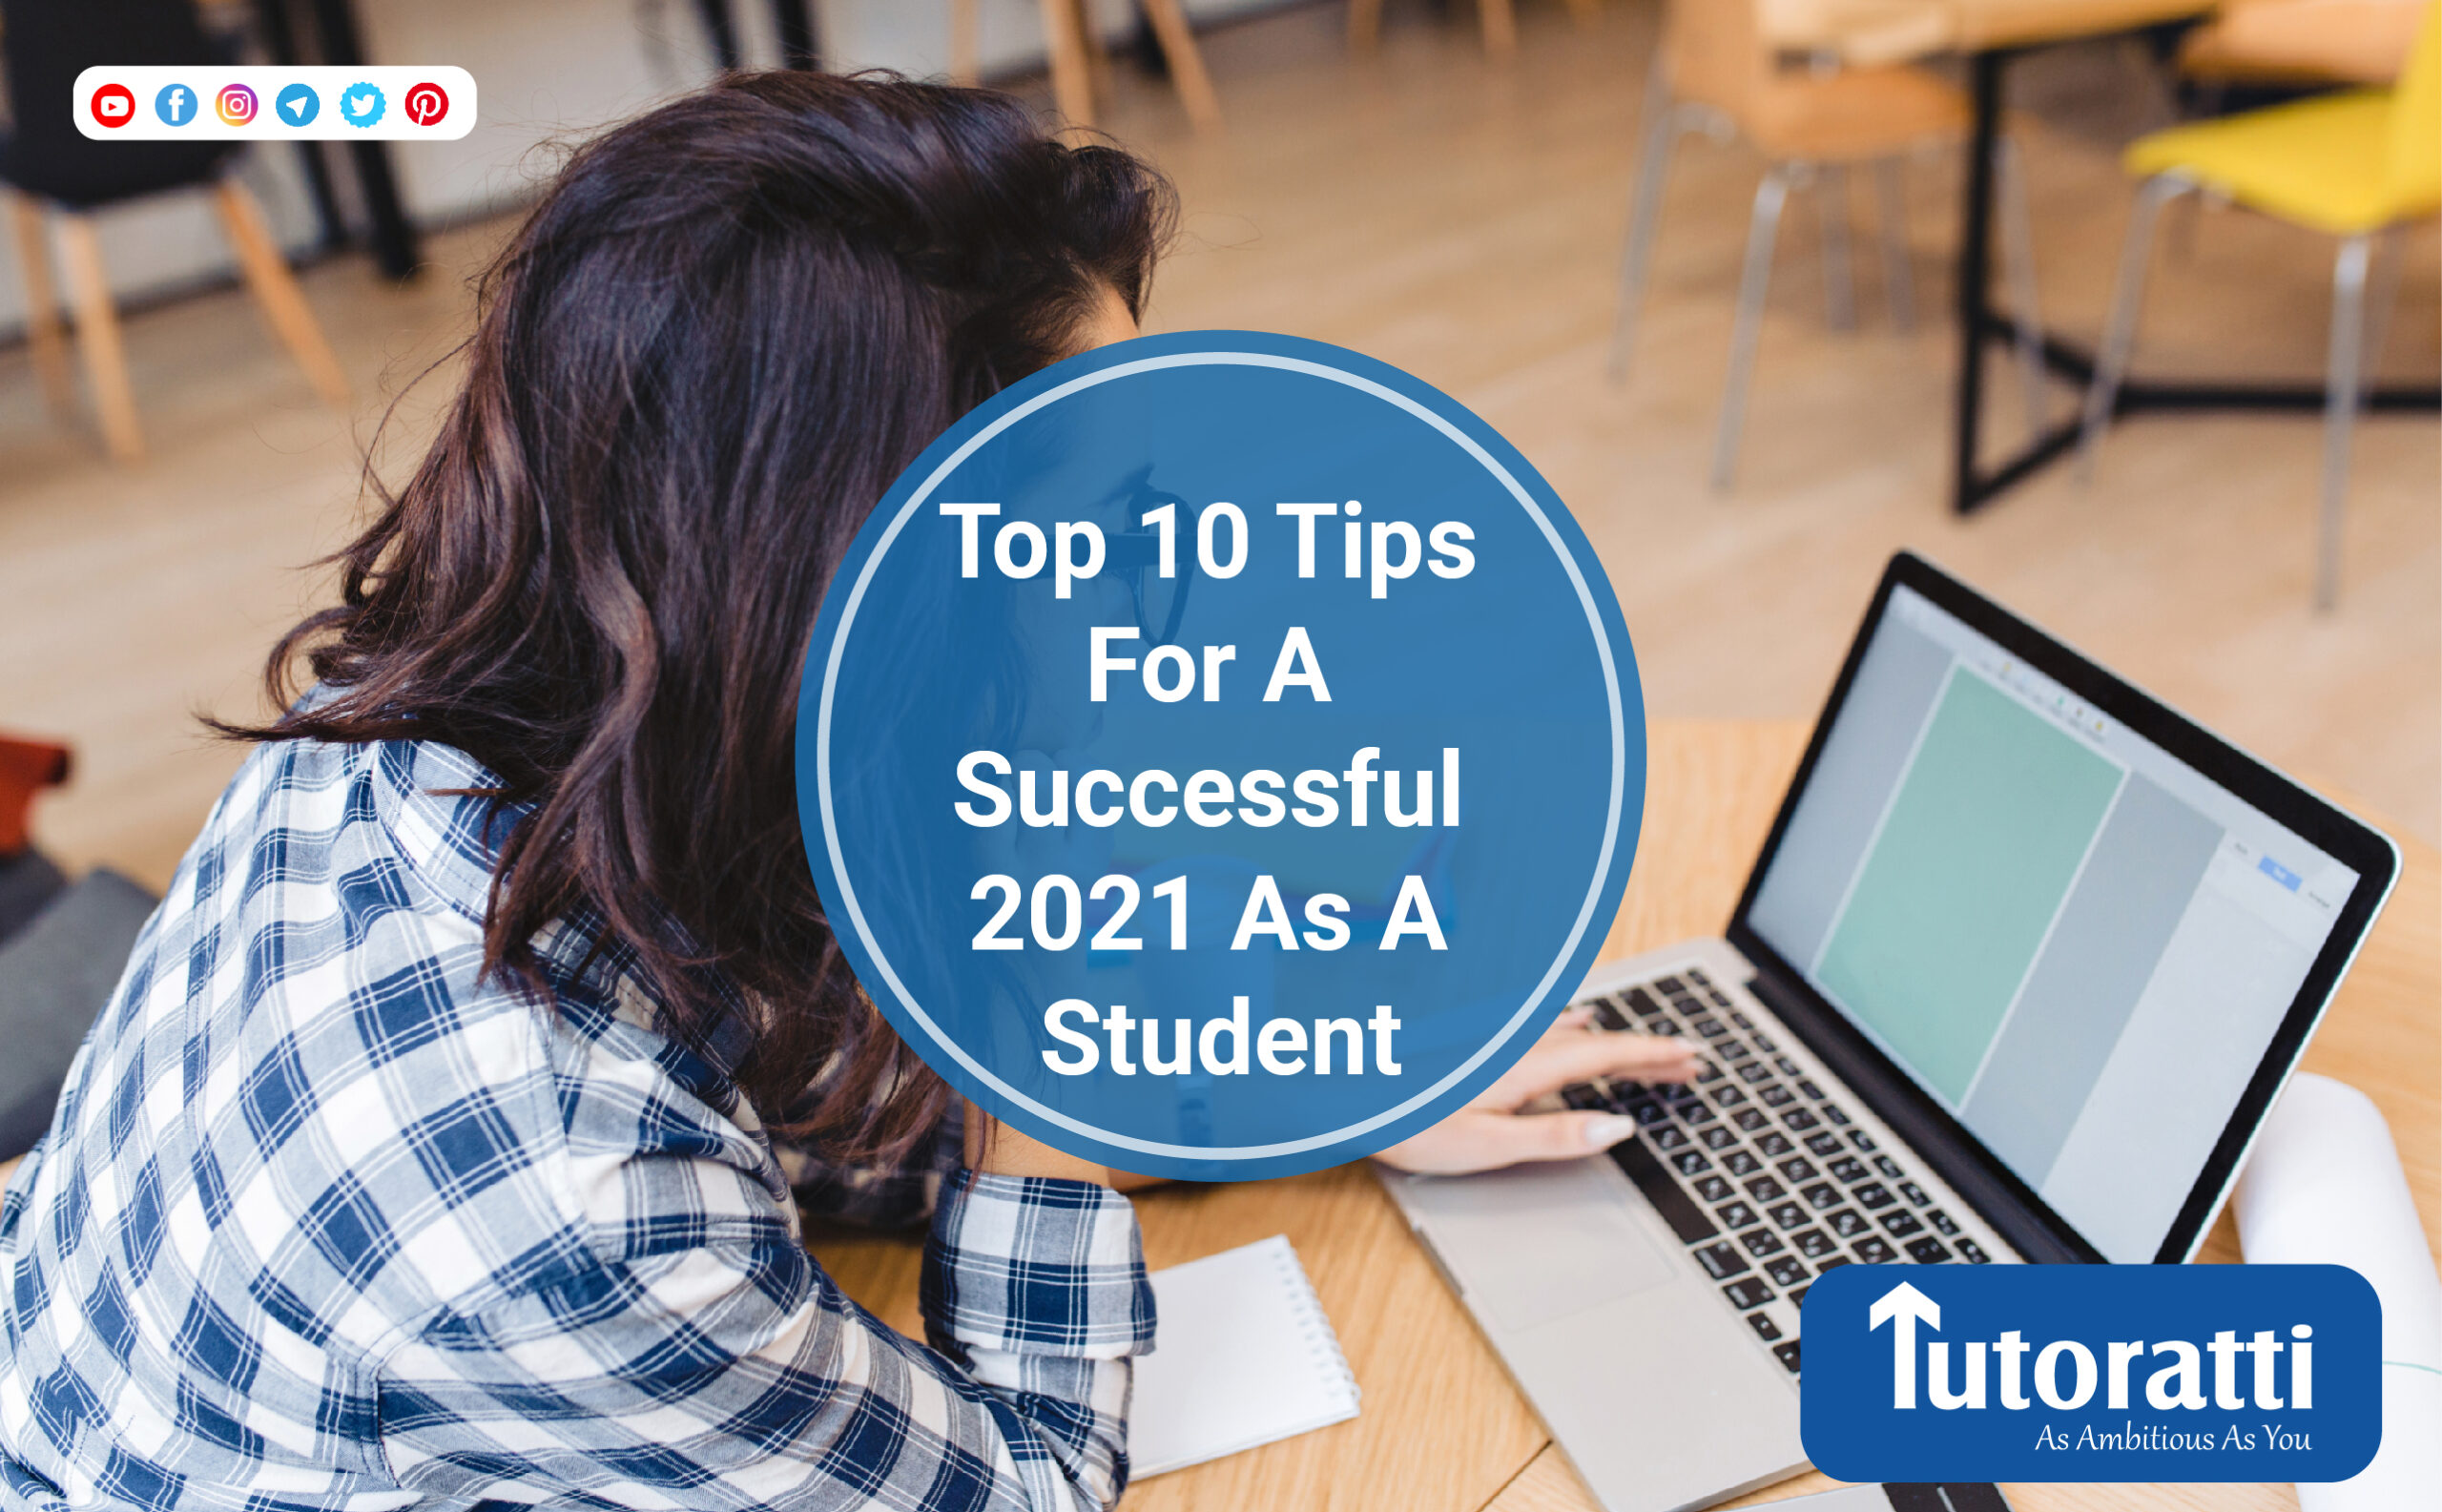 Top 10 Tips For A Successful 2021 As A Student